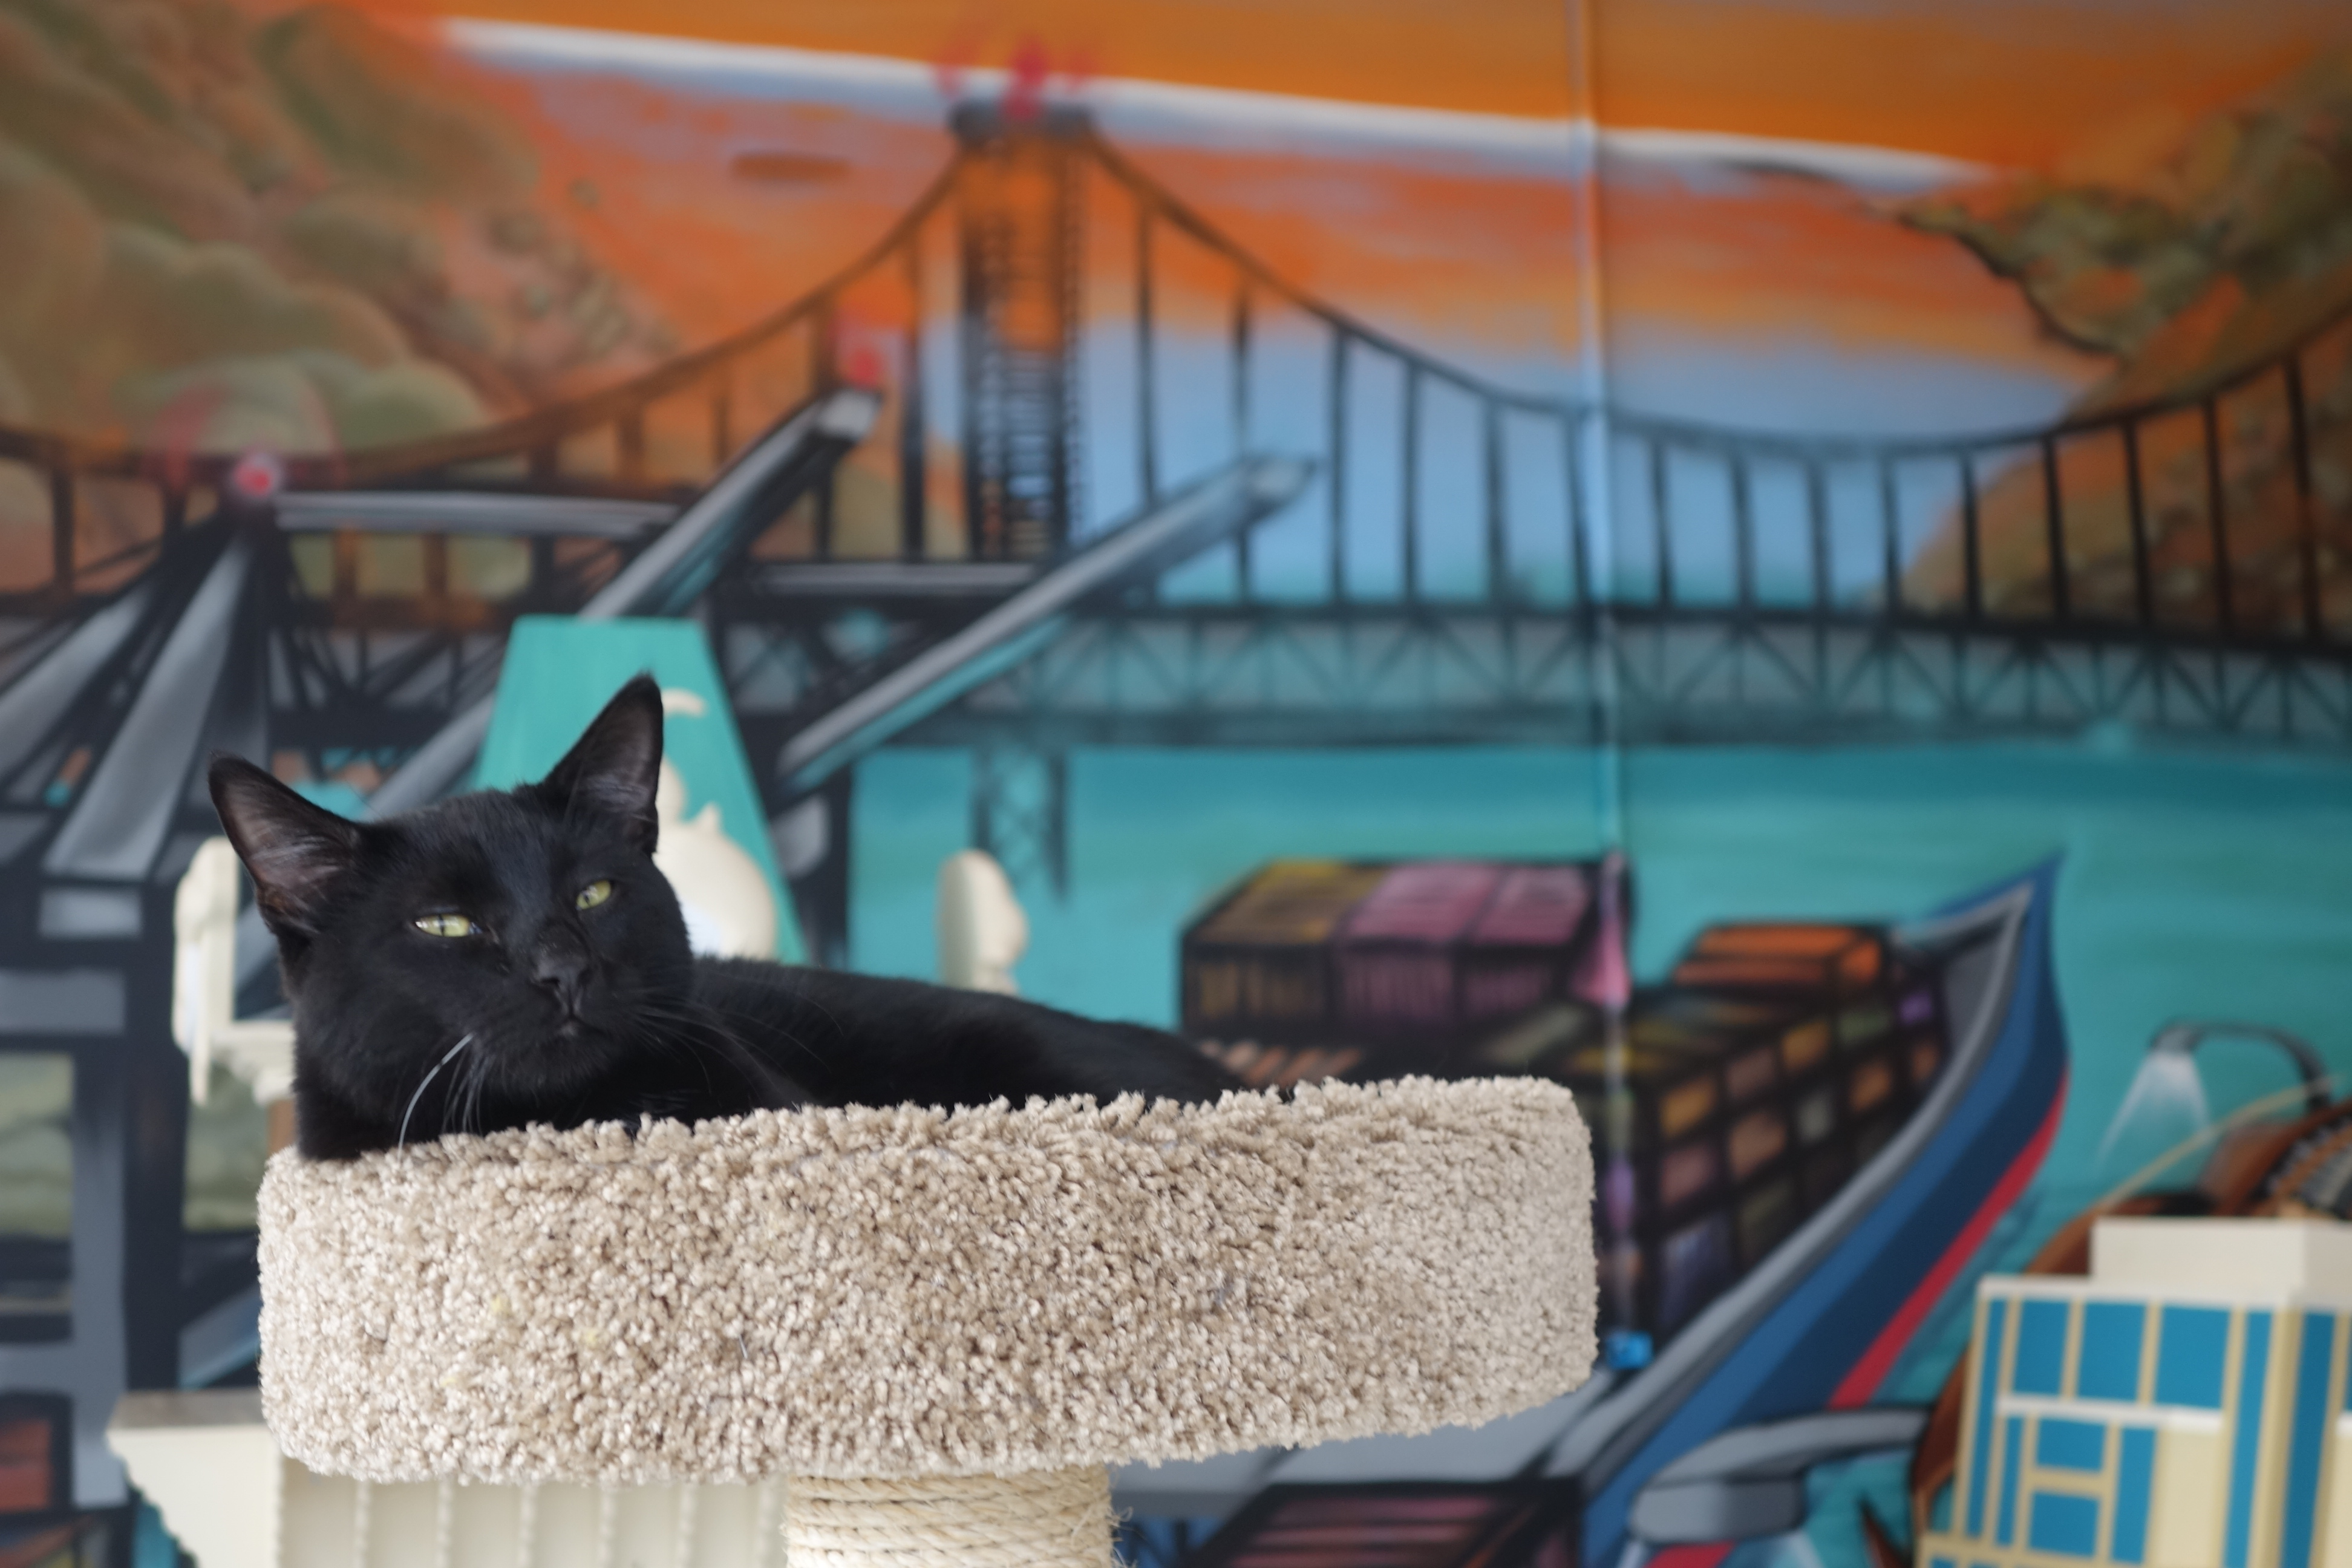 A cat lounges at Cat Town Cafe, the nation's first permanent cat cafe, during the grand opening on Oct. 25, 2014 in Oakland, Calif.